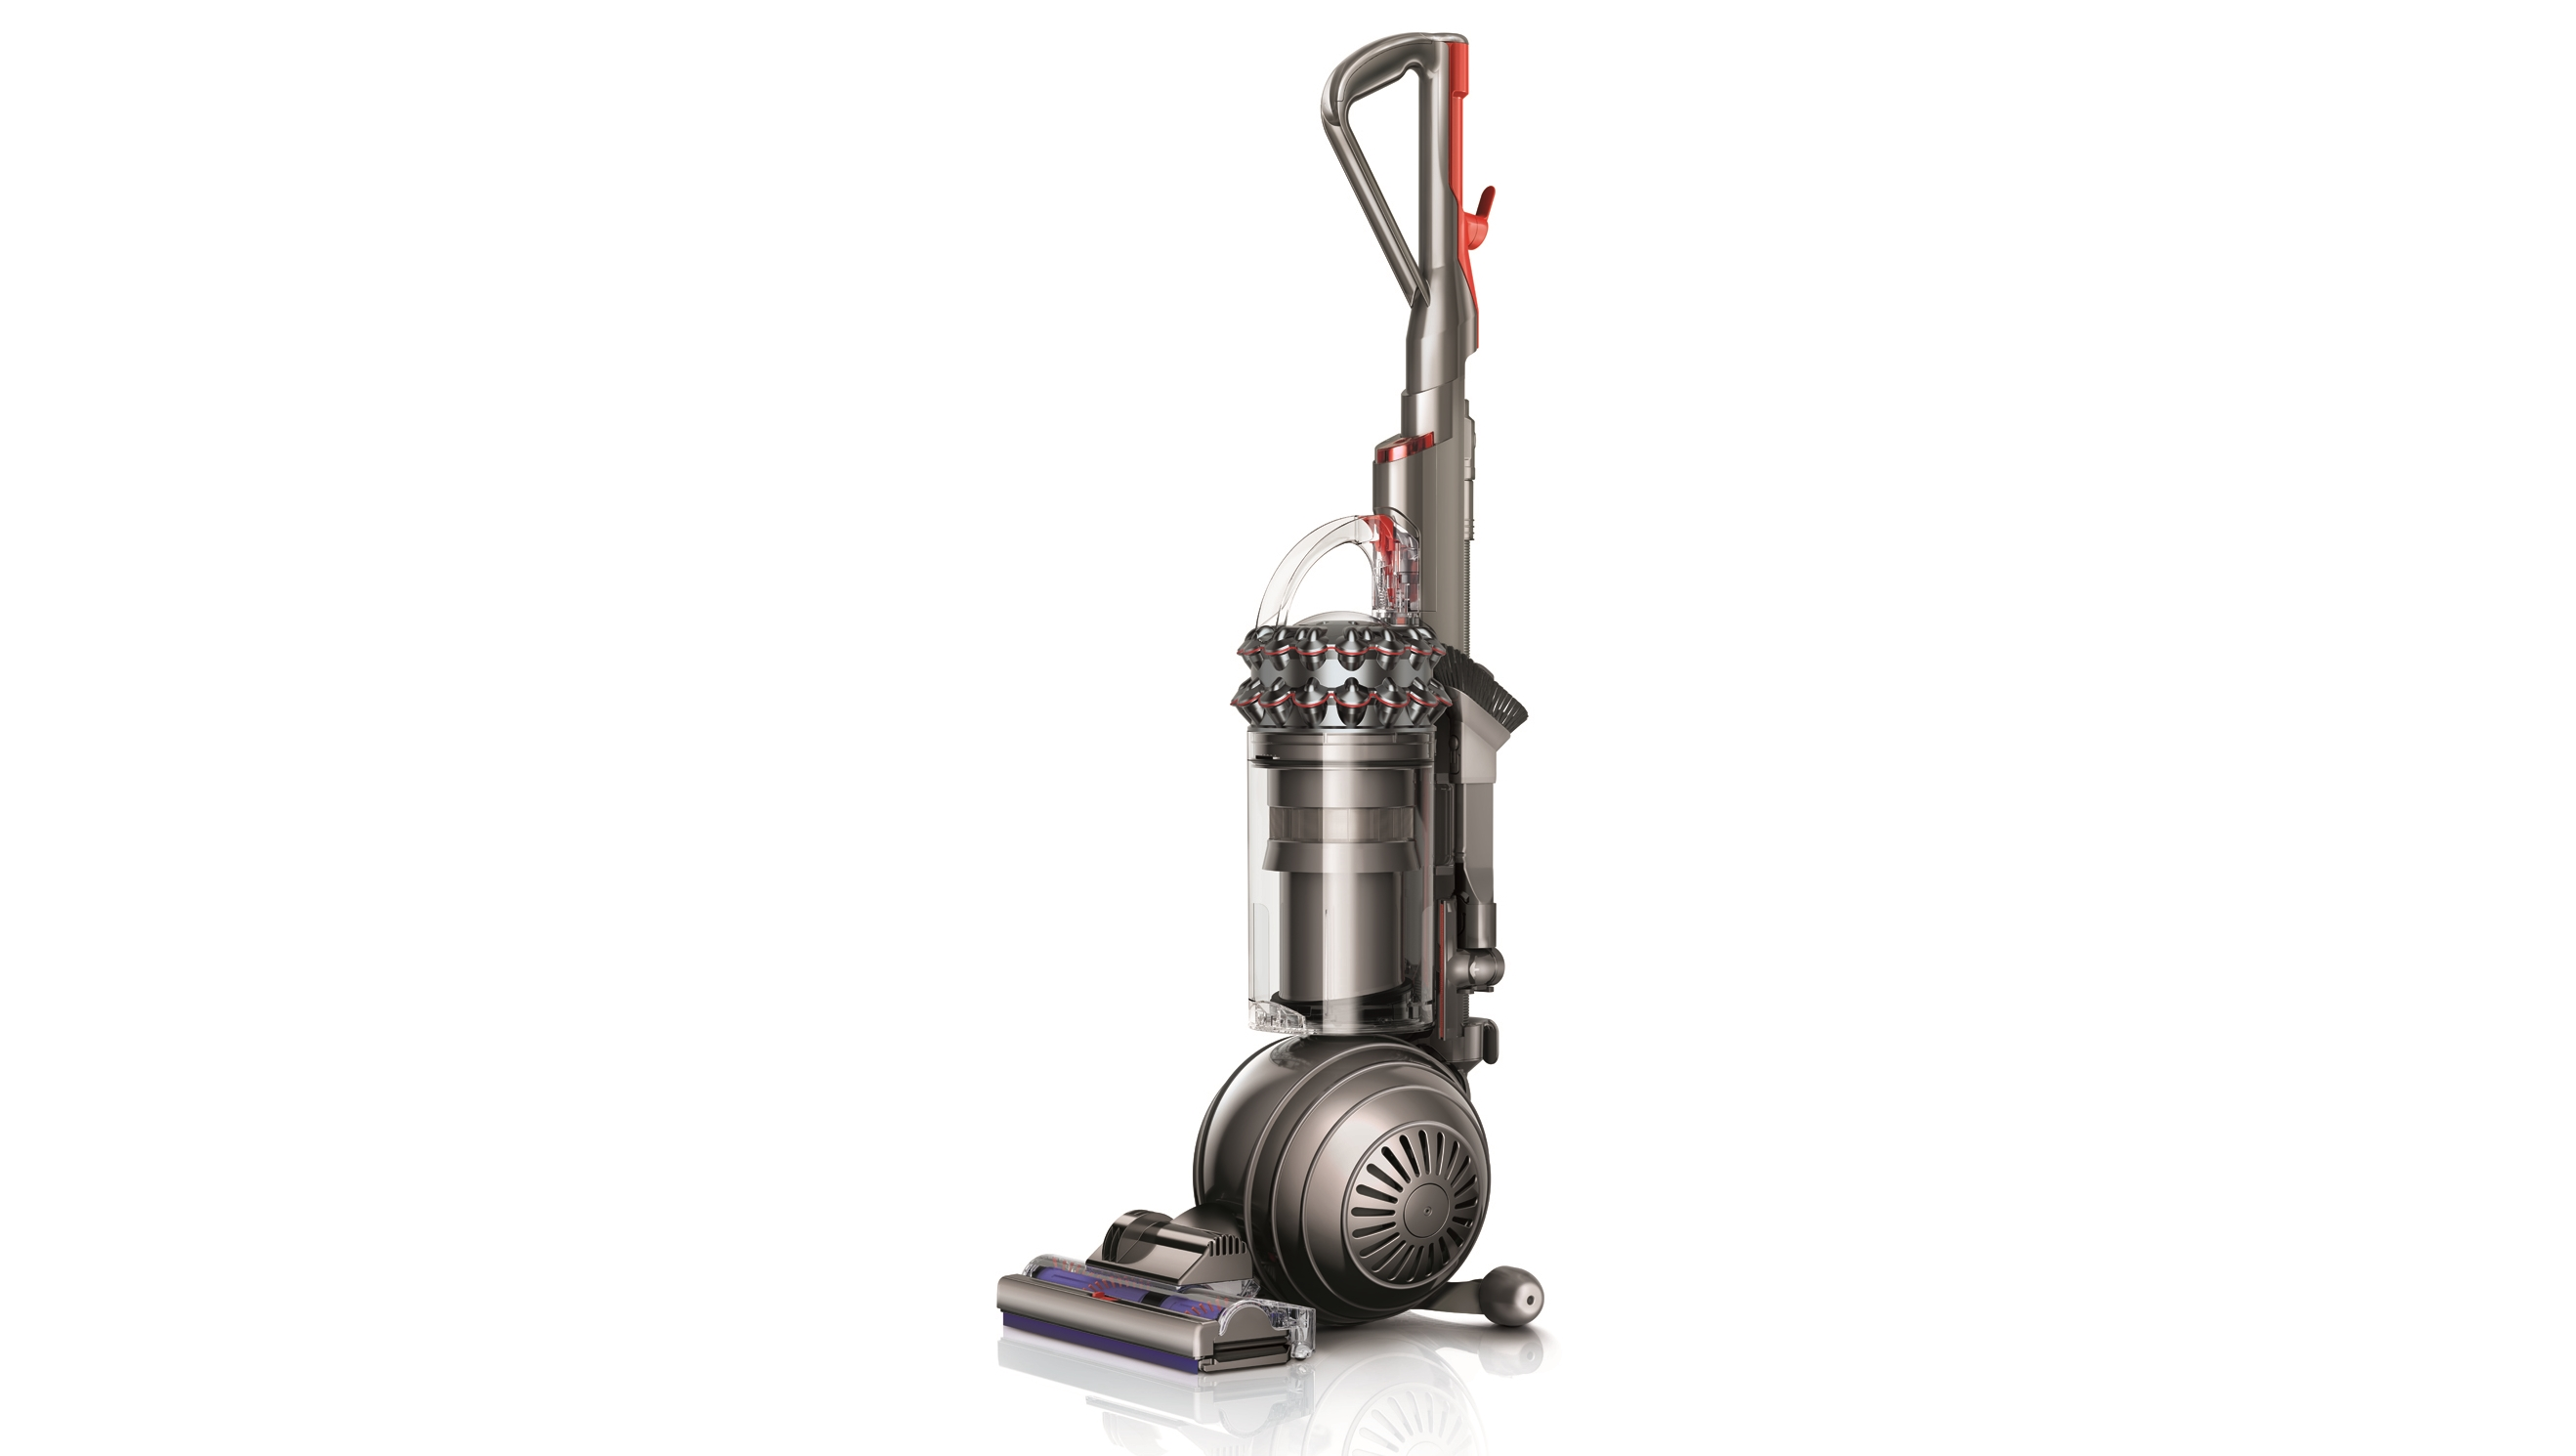 Dyson Vacuum Cleaners From A e Vacuums in Santa Rosa CA